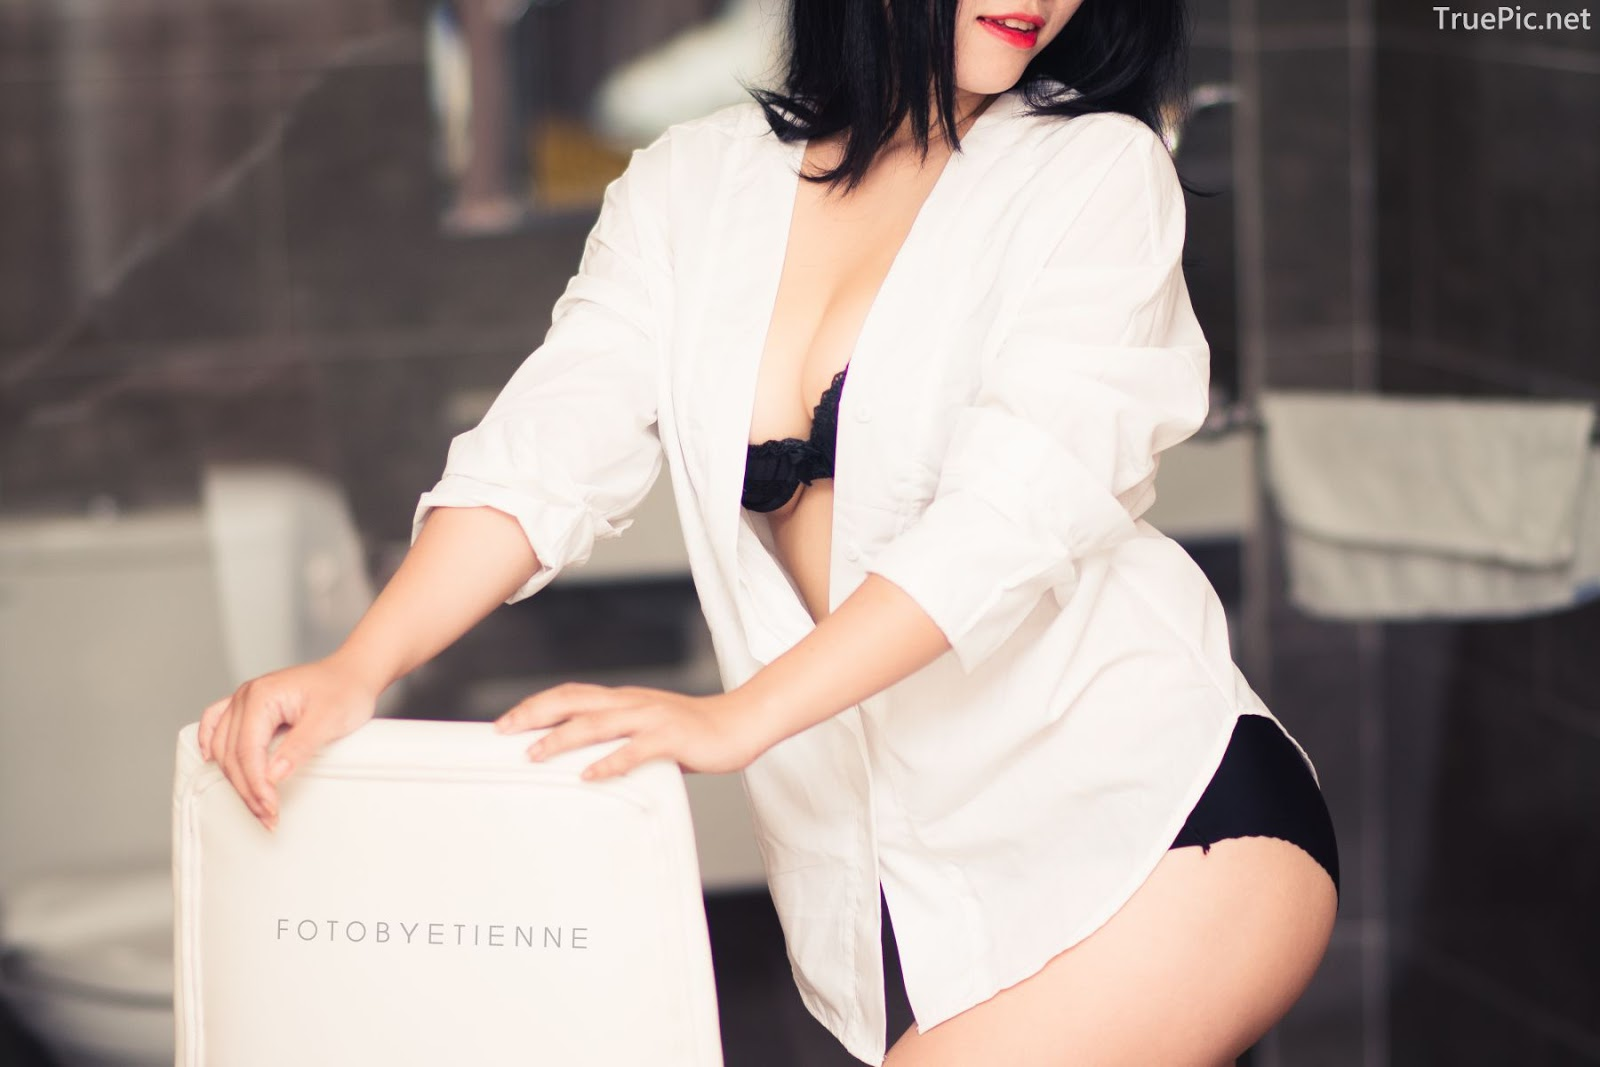 Super hot photos of Vietnamese beauties with lingerie and bikini - Photo by Le Blanc Studio - Part 4 - Picture 8